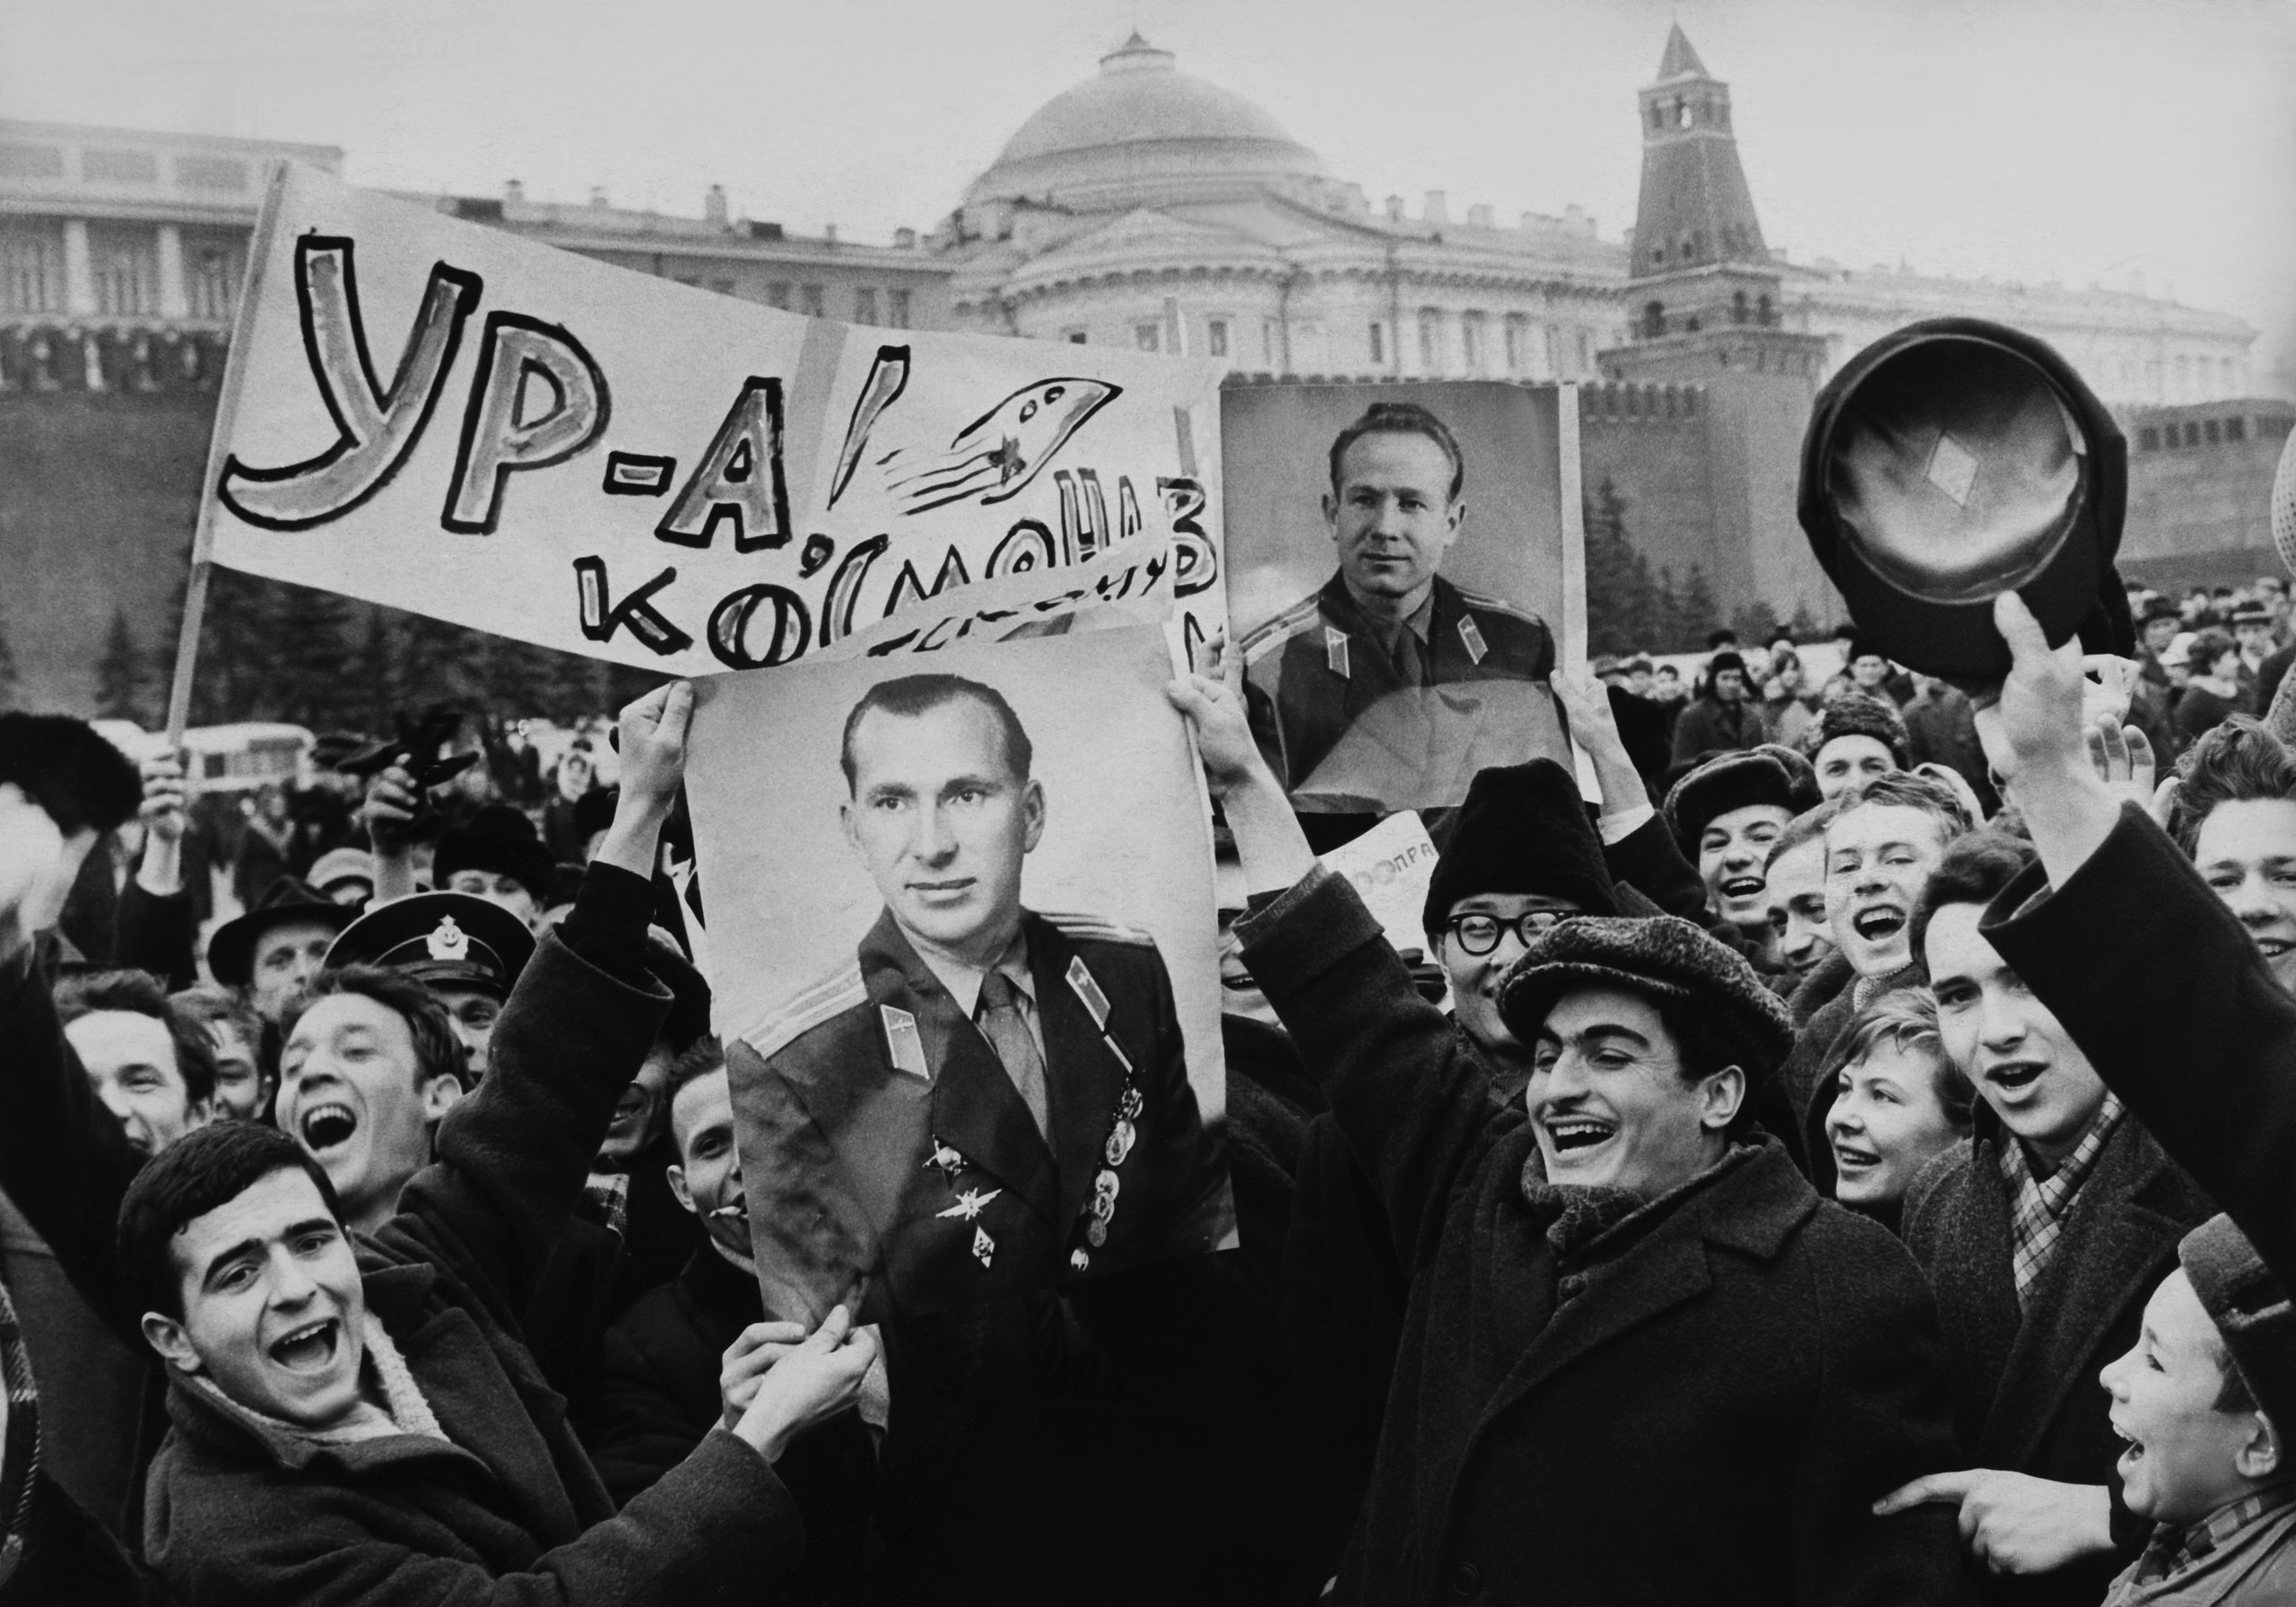 People celebrating the success of the mission Voskhod II in Moscow in 1965.